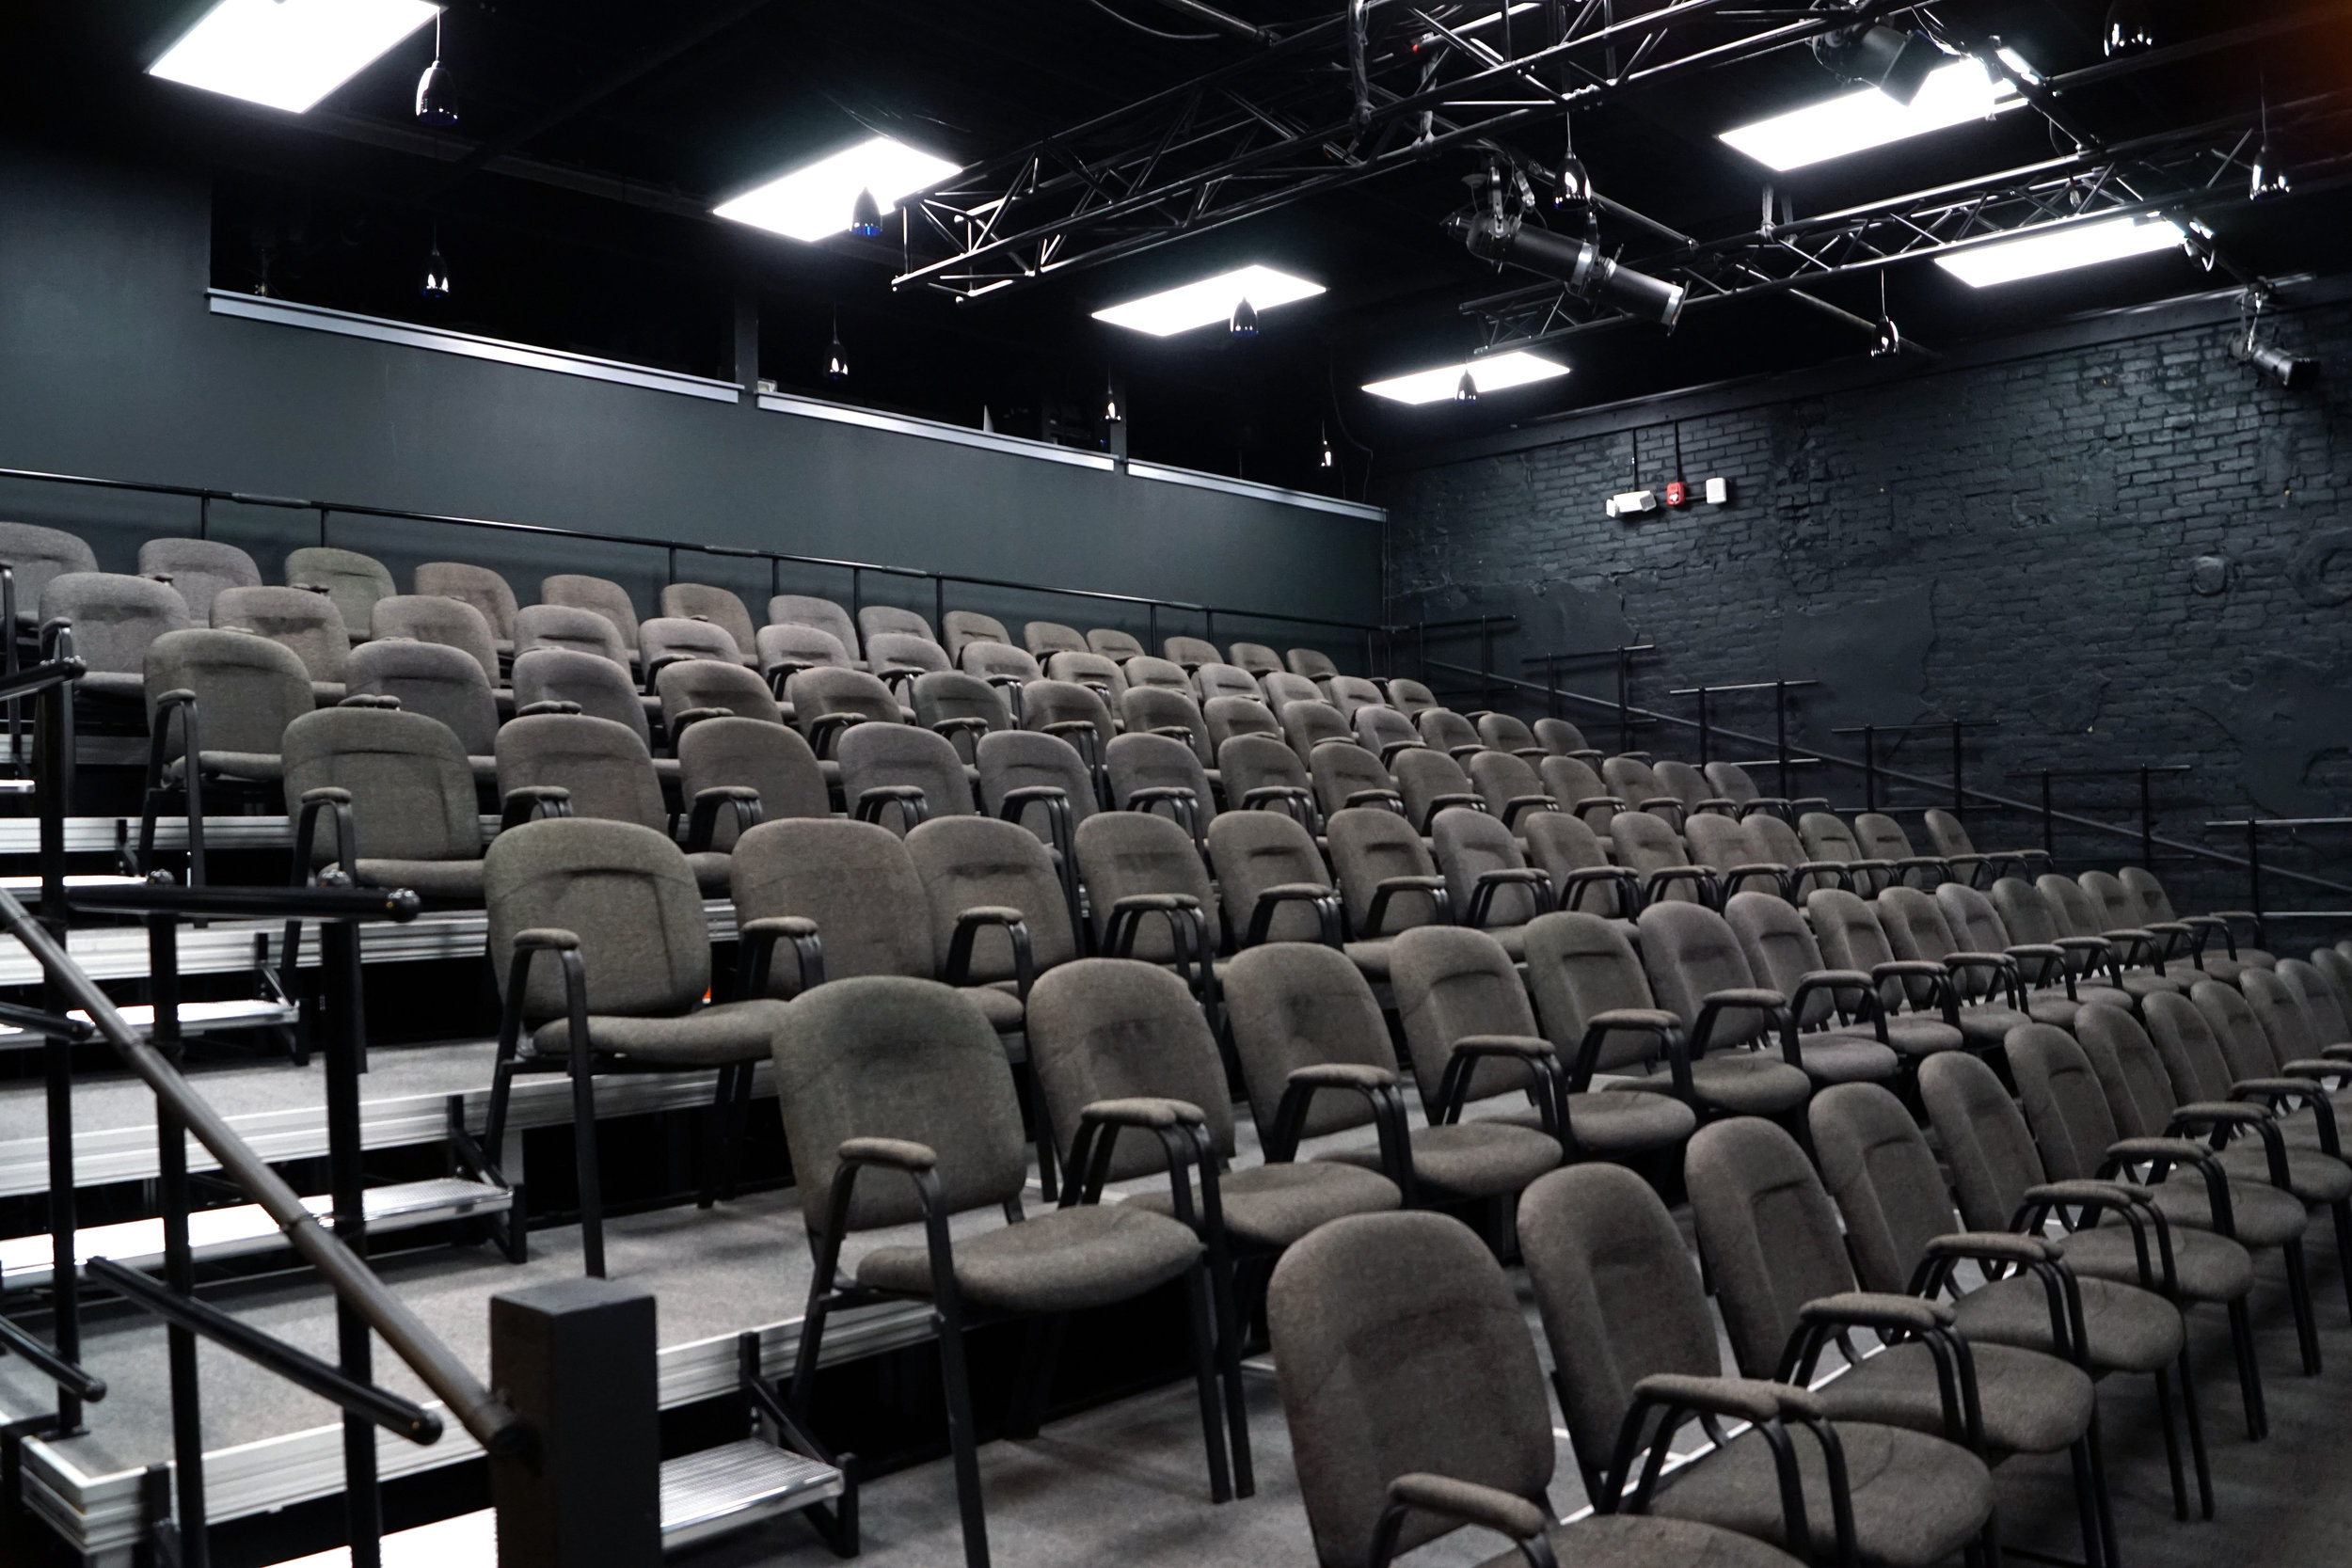 an intimate 98-seat theater space